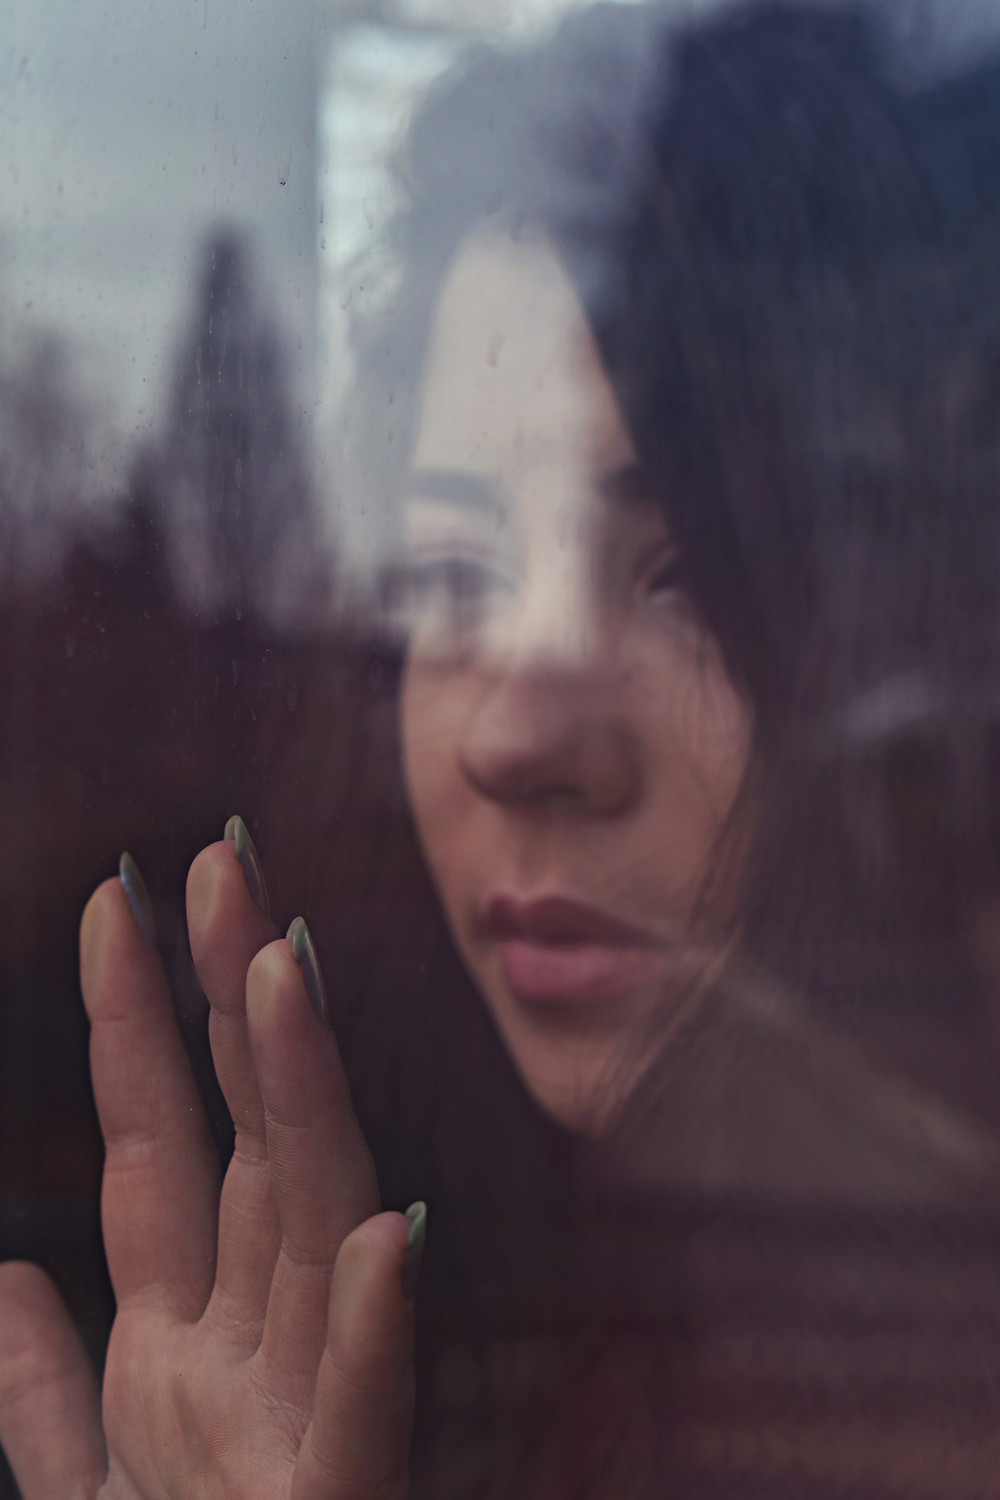 woman with hand on window looking out